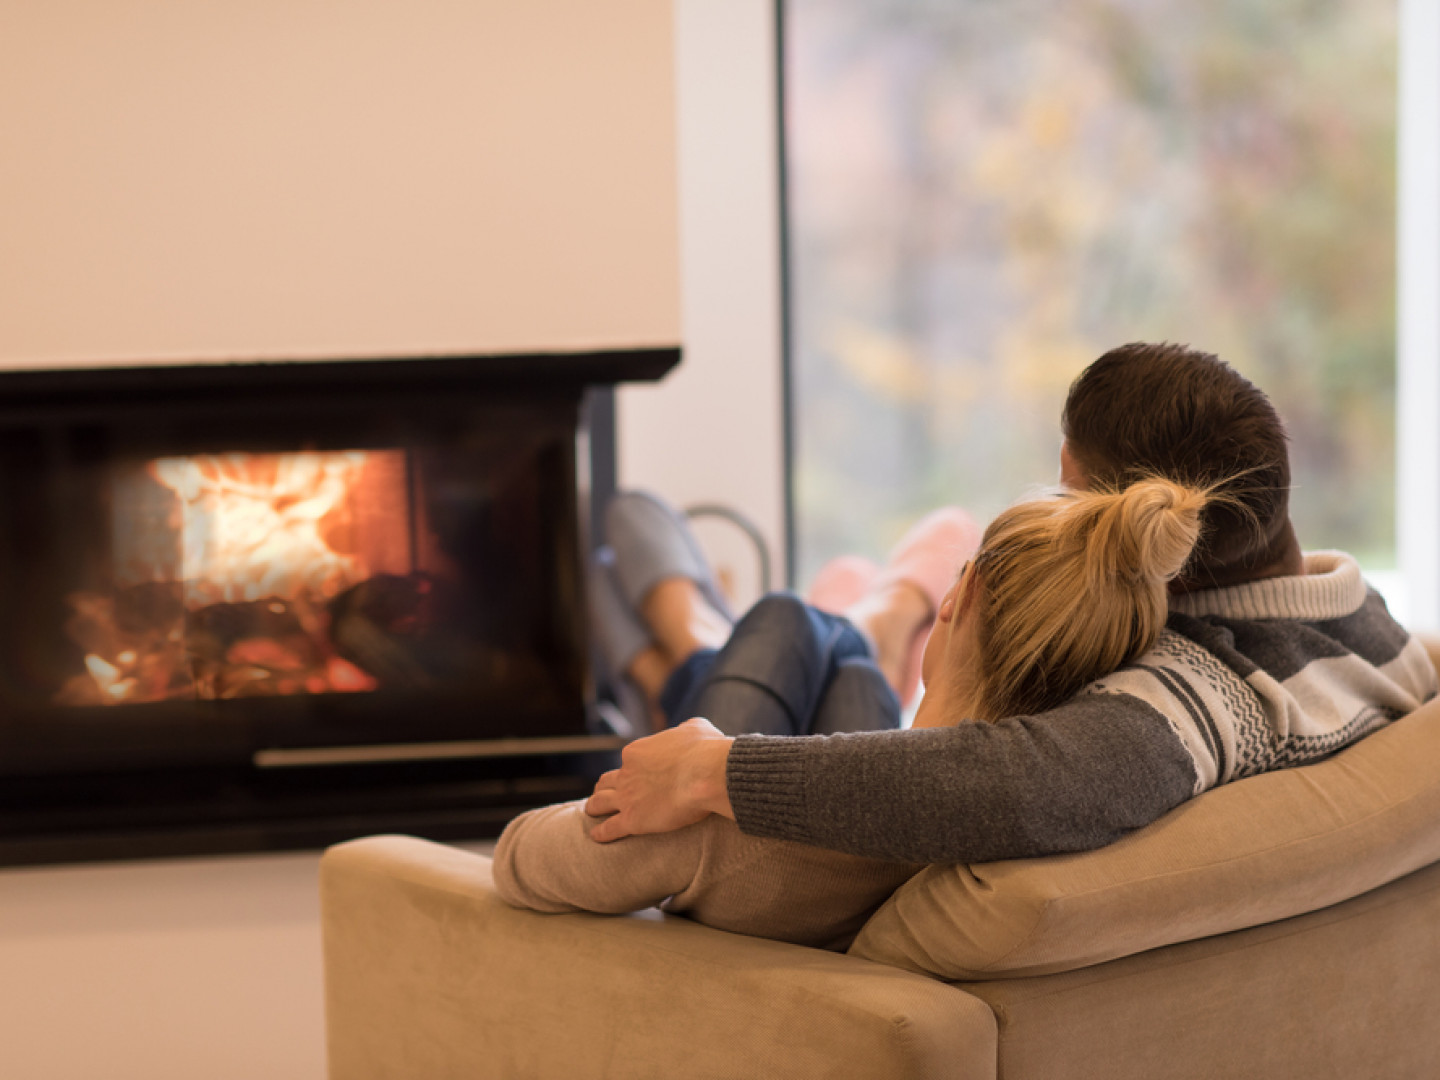 Get Cozy by Your New Fireplace